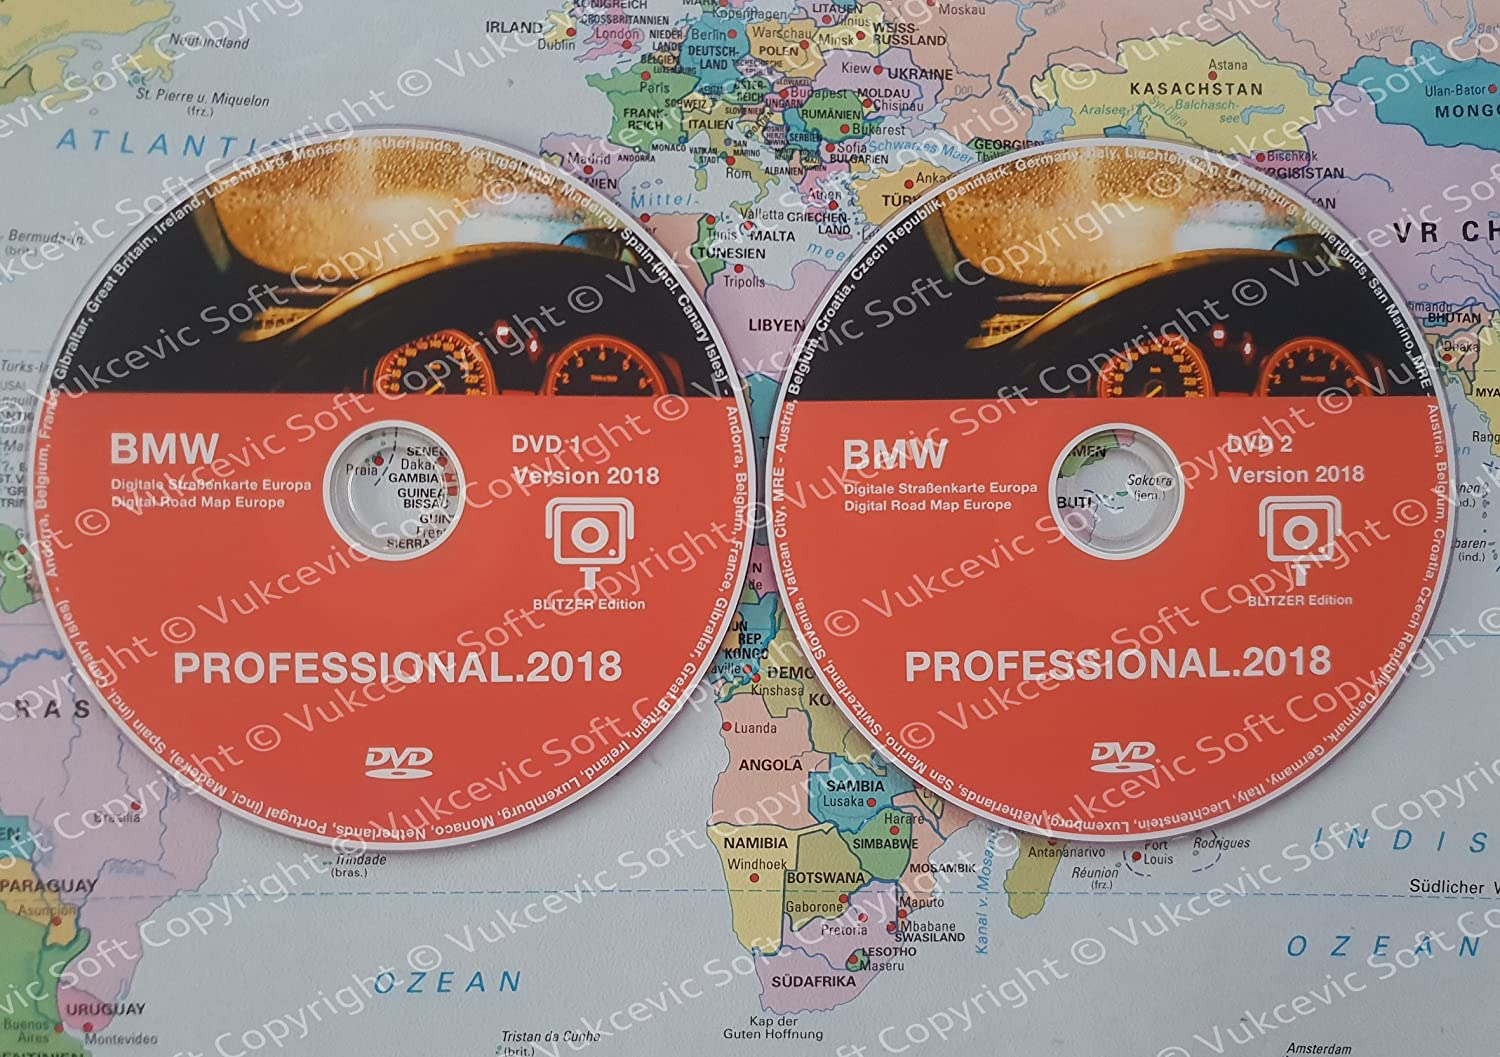 BMW Professional CCC Update DVD1  + DVD2  2018  Radar Edition Vukcevic Soft